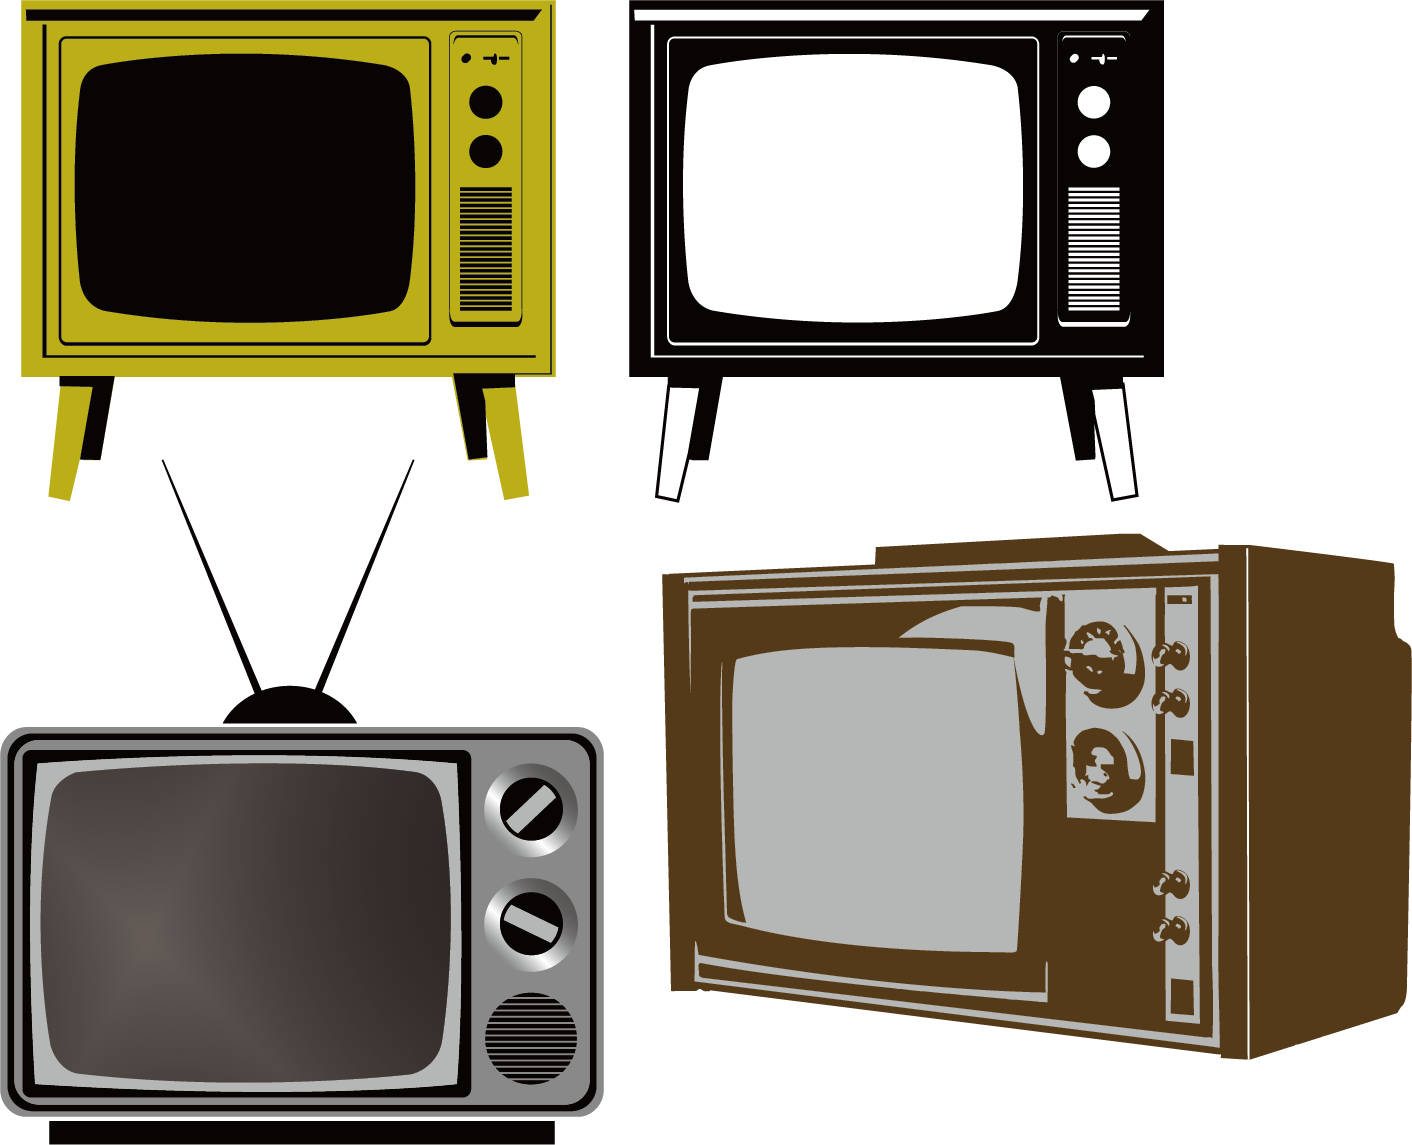 Electronics clipart electronic media. Digital television transition paper